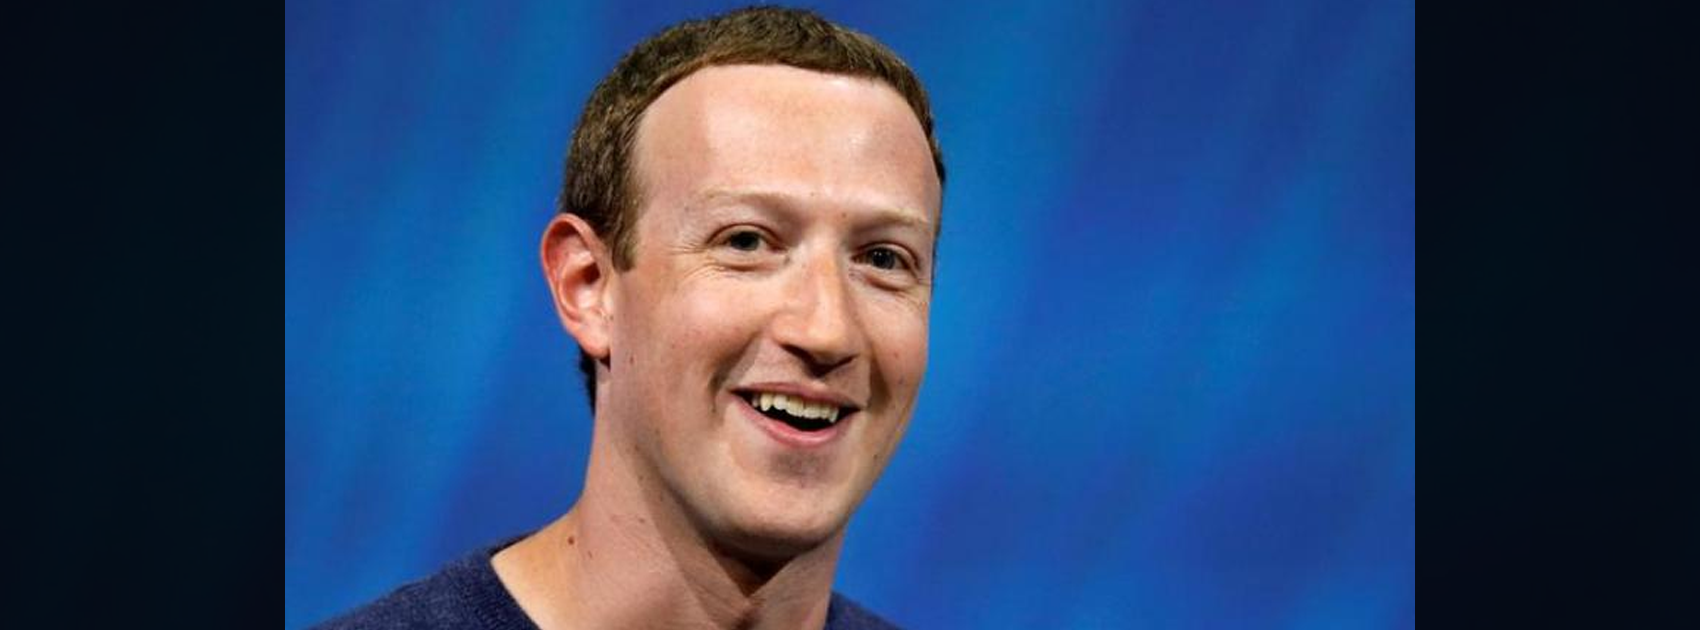 Things You Didn't Know About Mark Zuckerberg,Startup Stories,Facts You Didn't Know about Mark Zuckerberg,Mark Zuckerberg Latest News,Unknown Facts About Mark Zuckerberg,Things You Didn't Know About Facebook CEO Mark Zuckerberg,#MarkZuckerberg